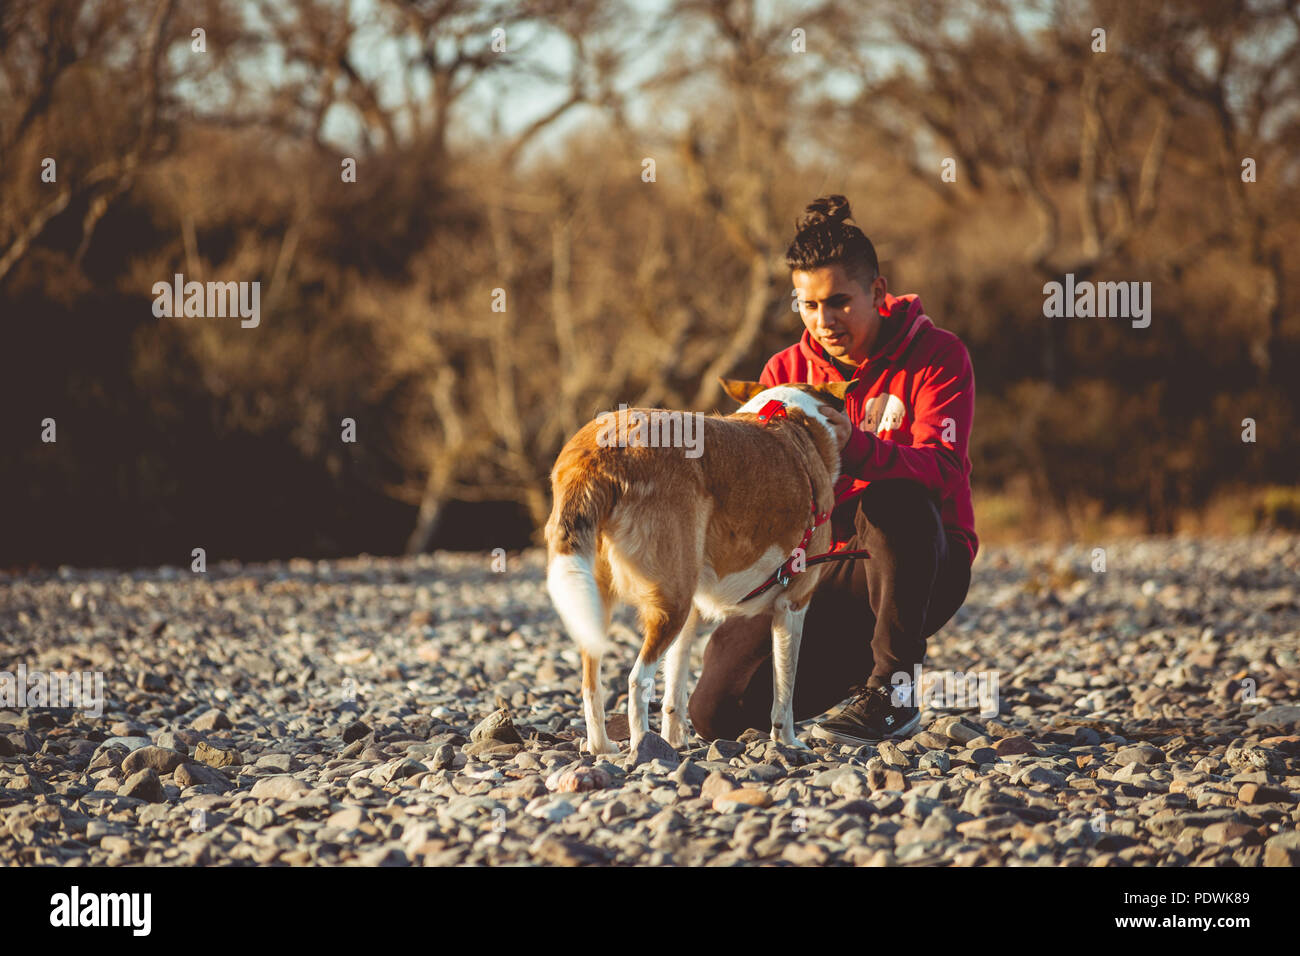 Dog and human in park - Stock Image